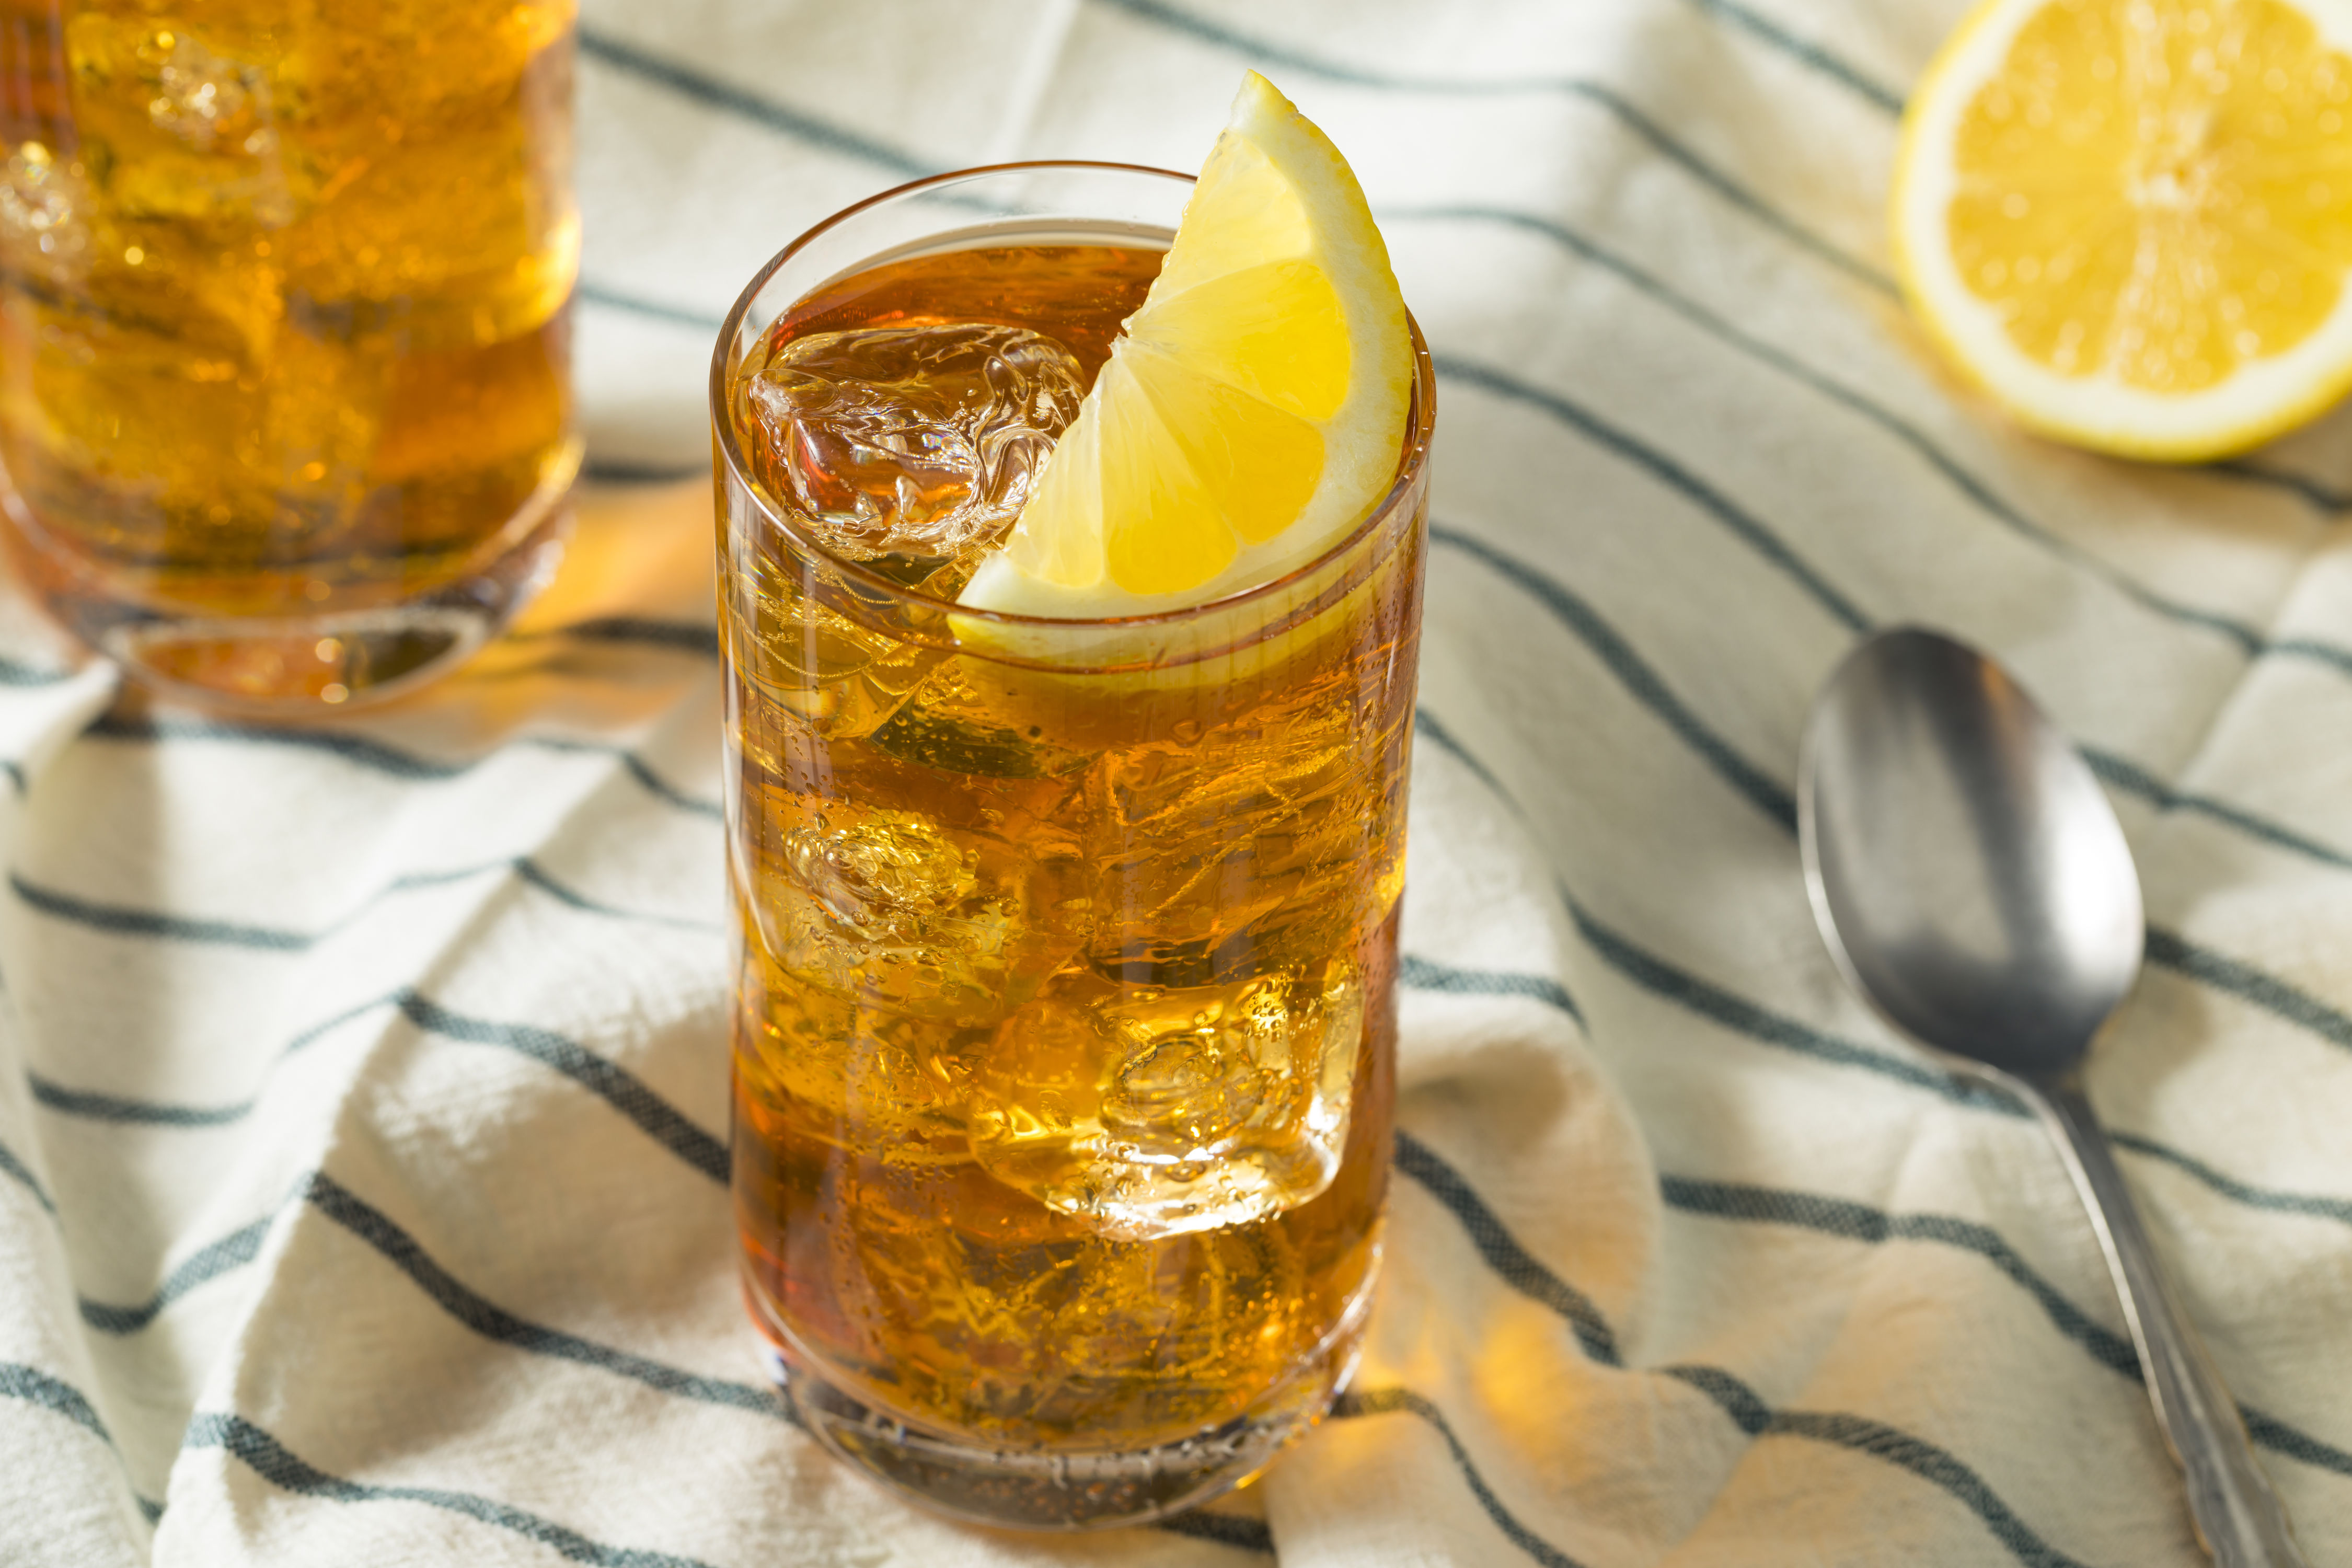 The Best Way To Avoid Cloudy Iced Tea